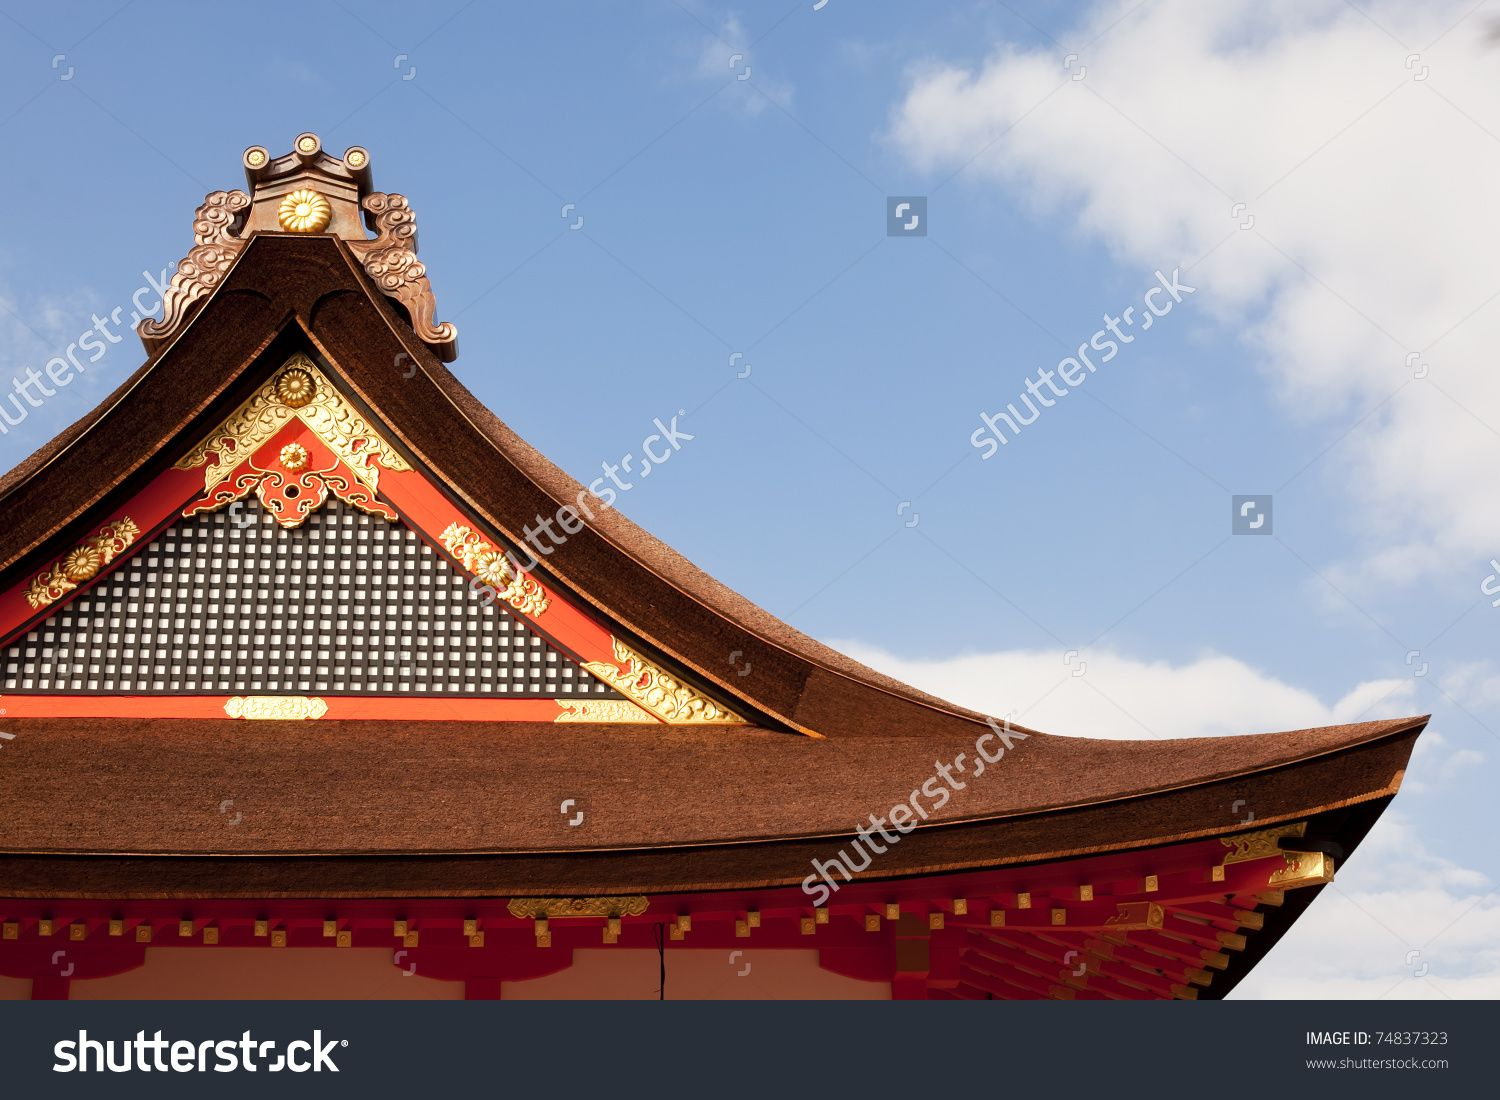 Image Result For Japanese Temple Building A Shed Roof Cool Roof Roof Repair